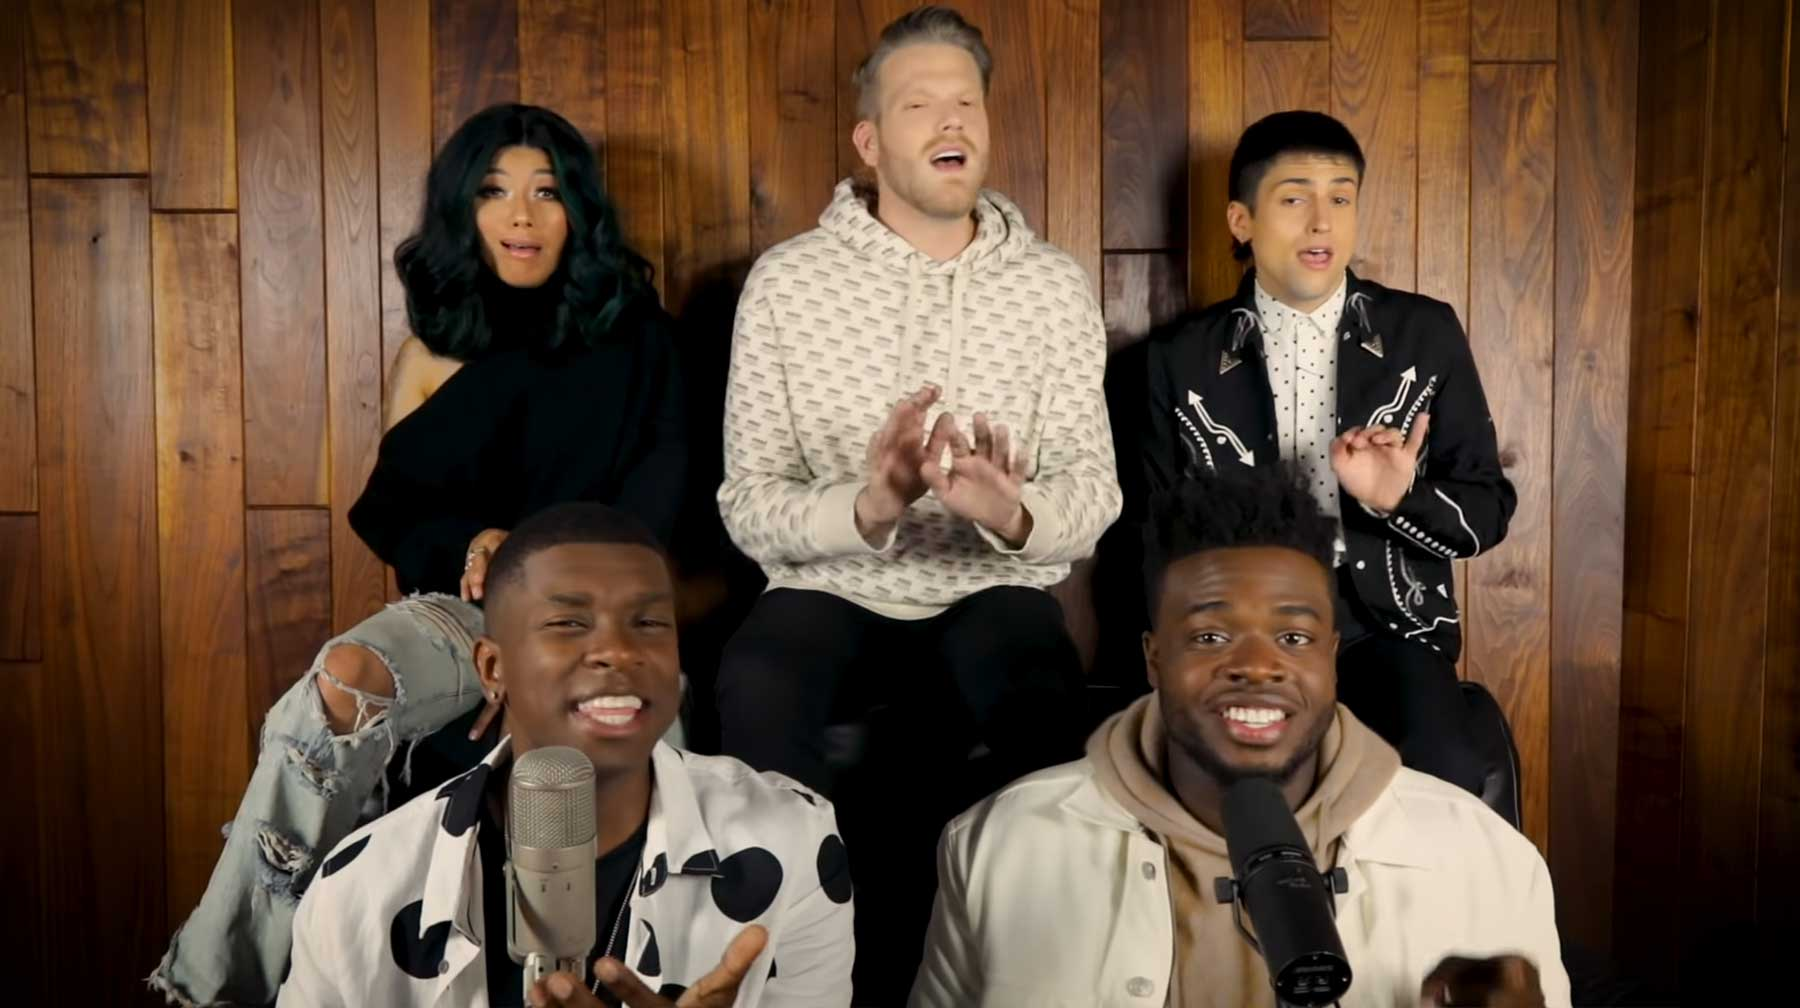 Pentatonix: Evolution of Rihanna